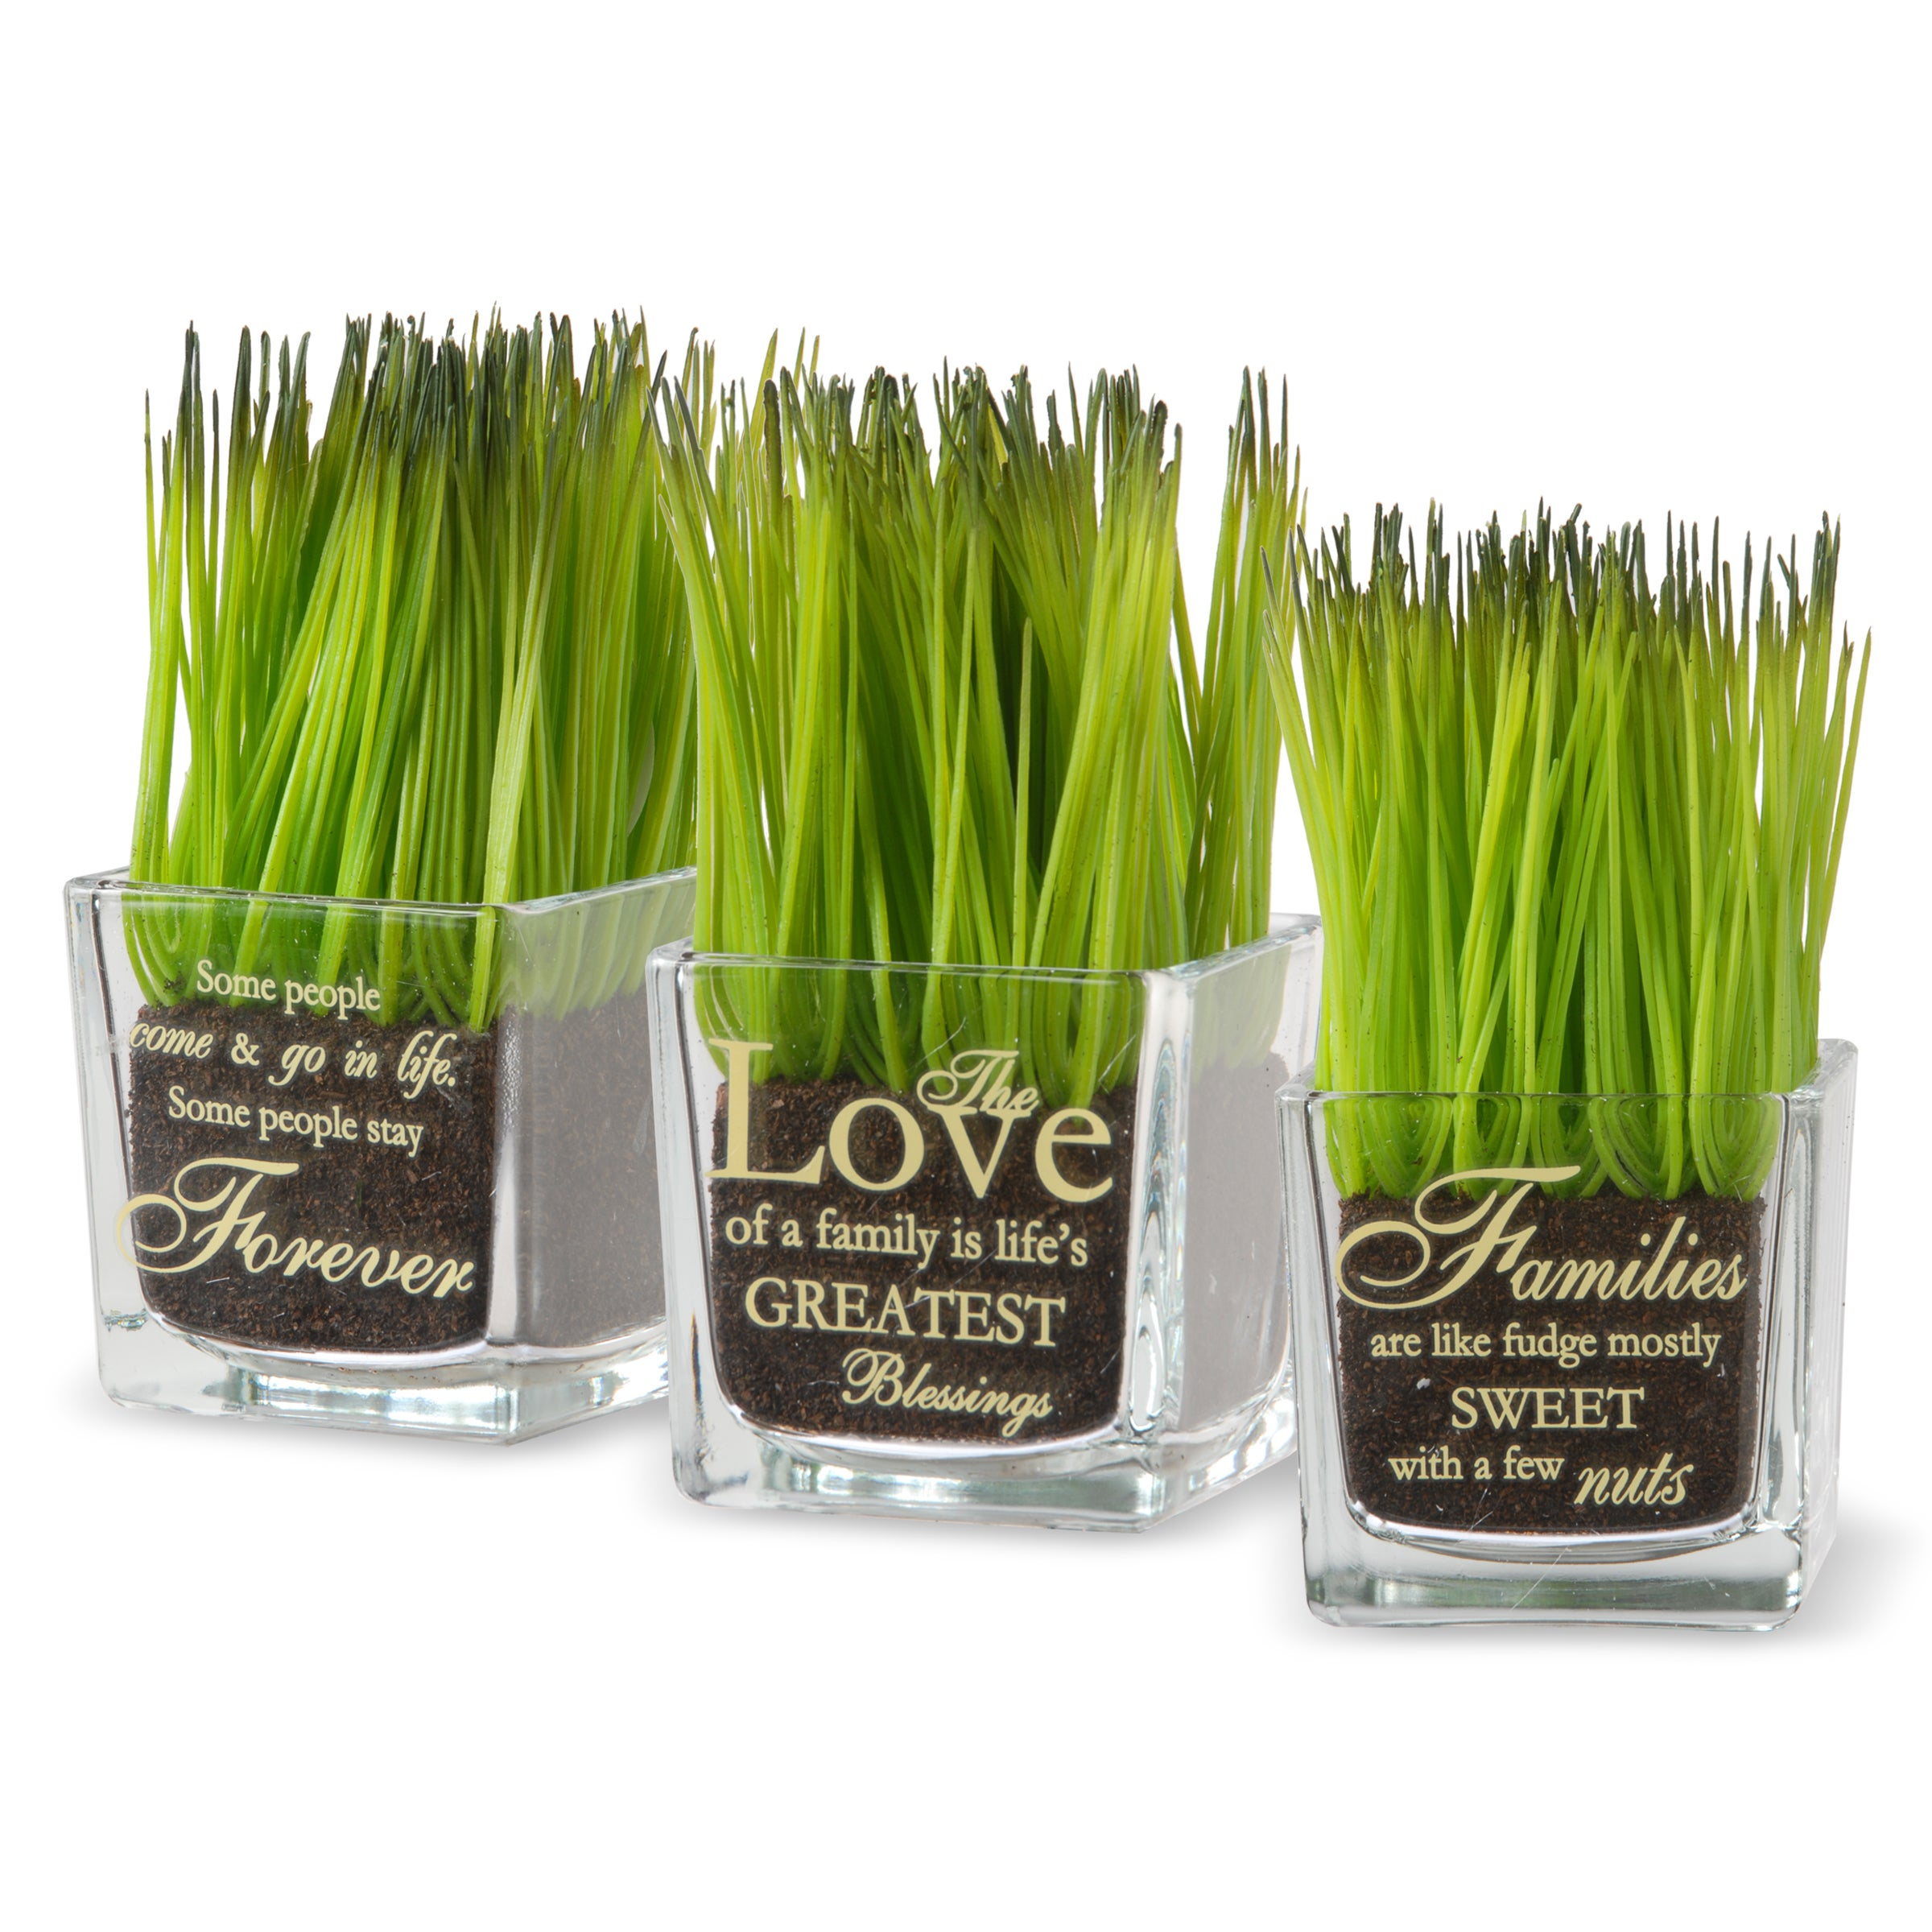 National Tree Company Family Printed Square Glass Pot with Artificial Grass (Set of 3) (Clear)